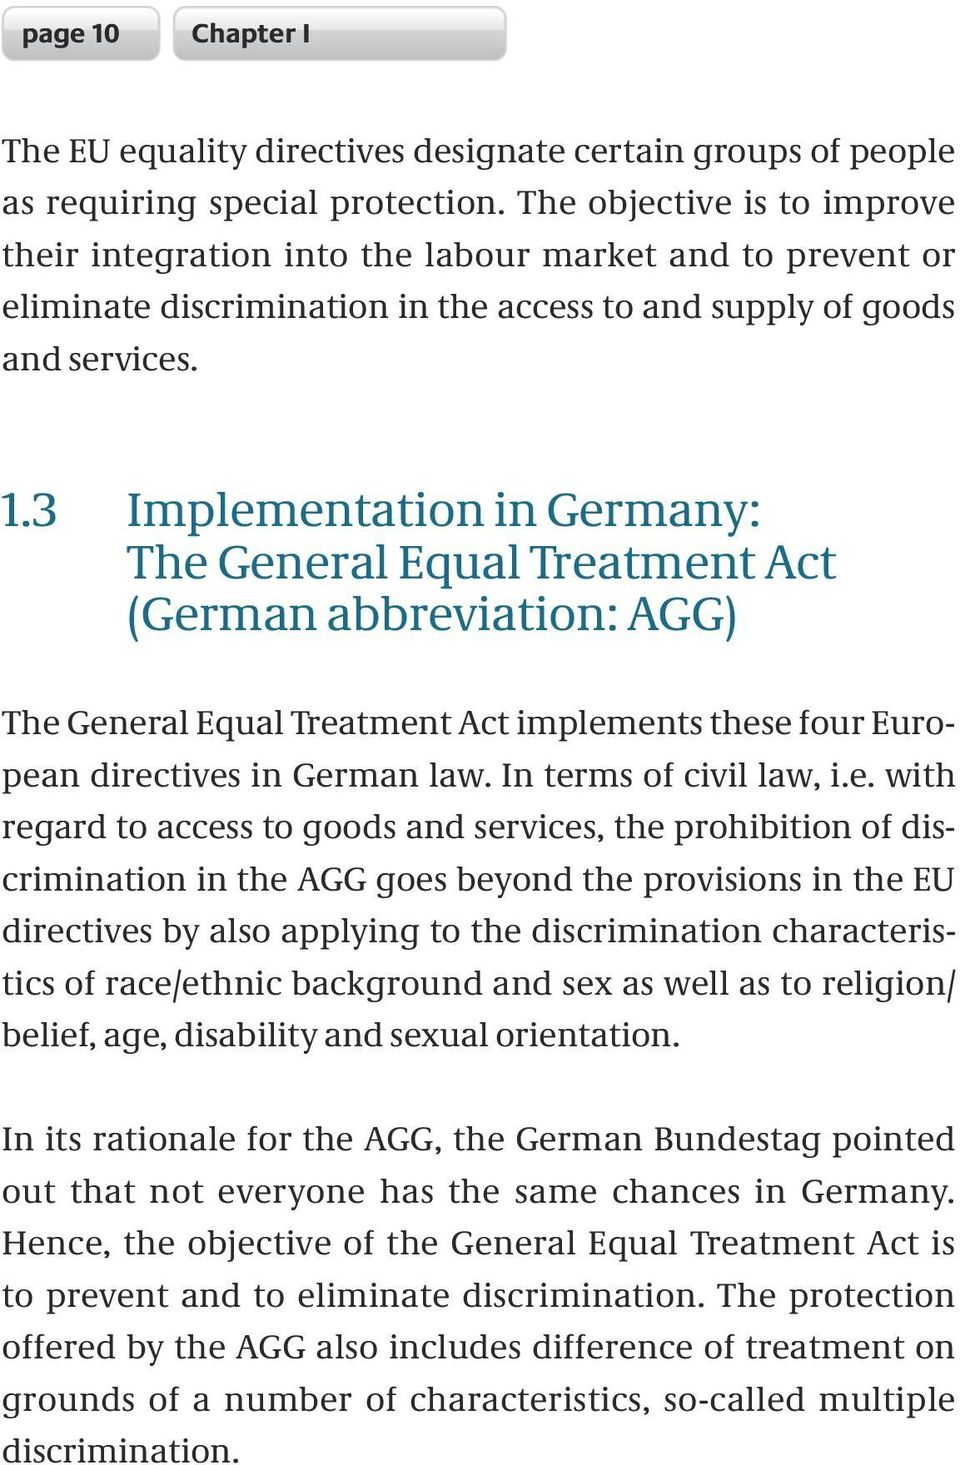 3 Implementation in Germany: The General Equal Treatment Act (German abbreviation: AGG) The General Equal Treatment Act implements these four European directives in German law.